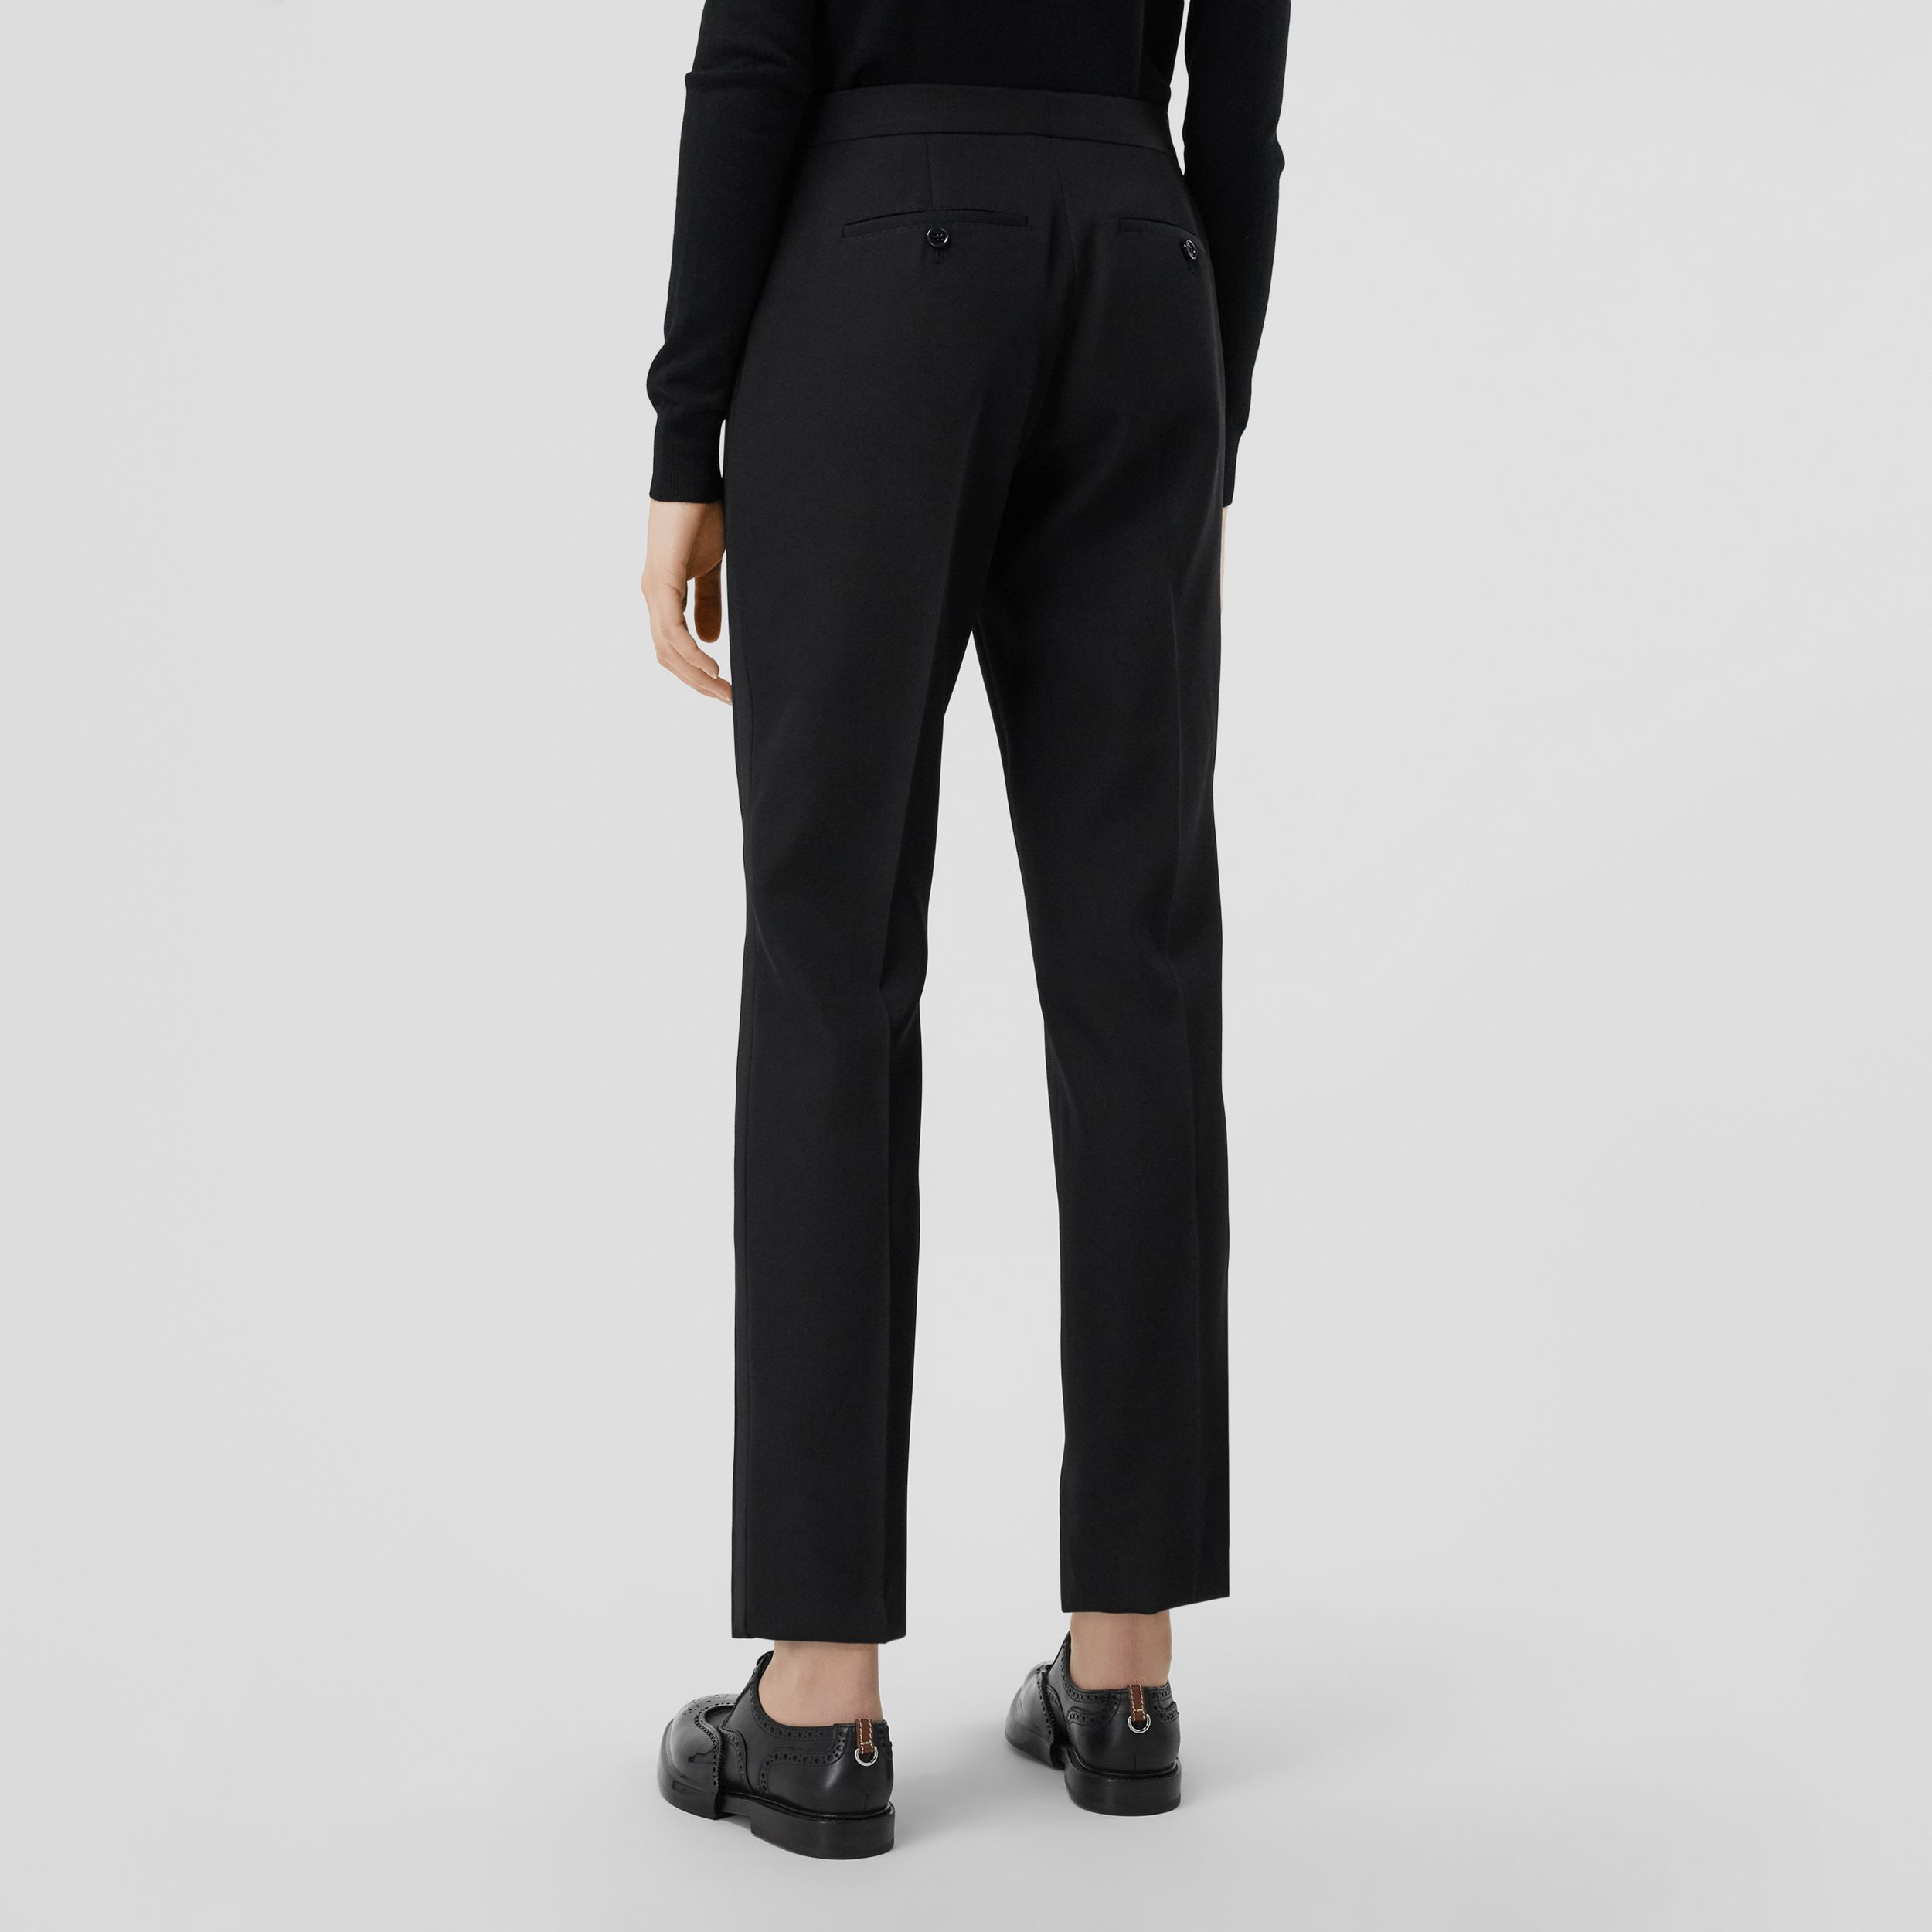 Silk Blend Side Stripe Wool Tailored Trousers in Black - Women | Burberry United States - 3